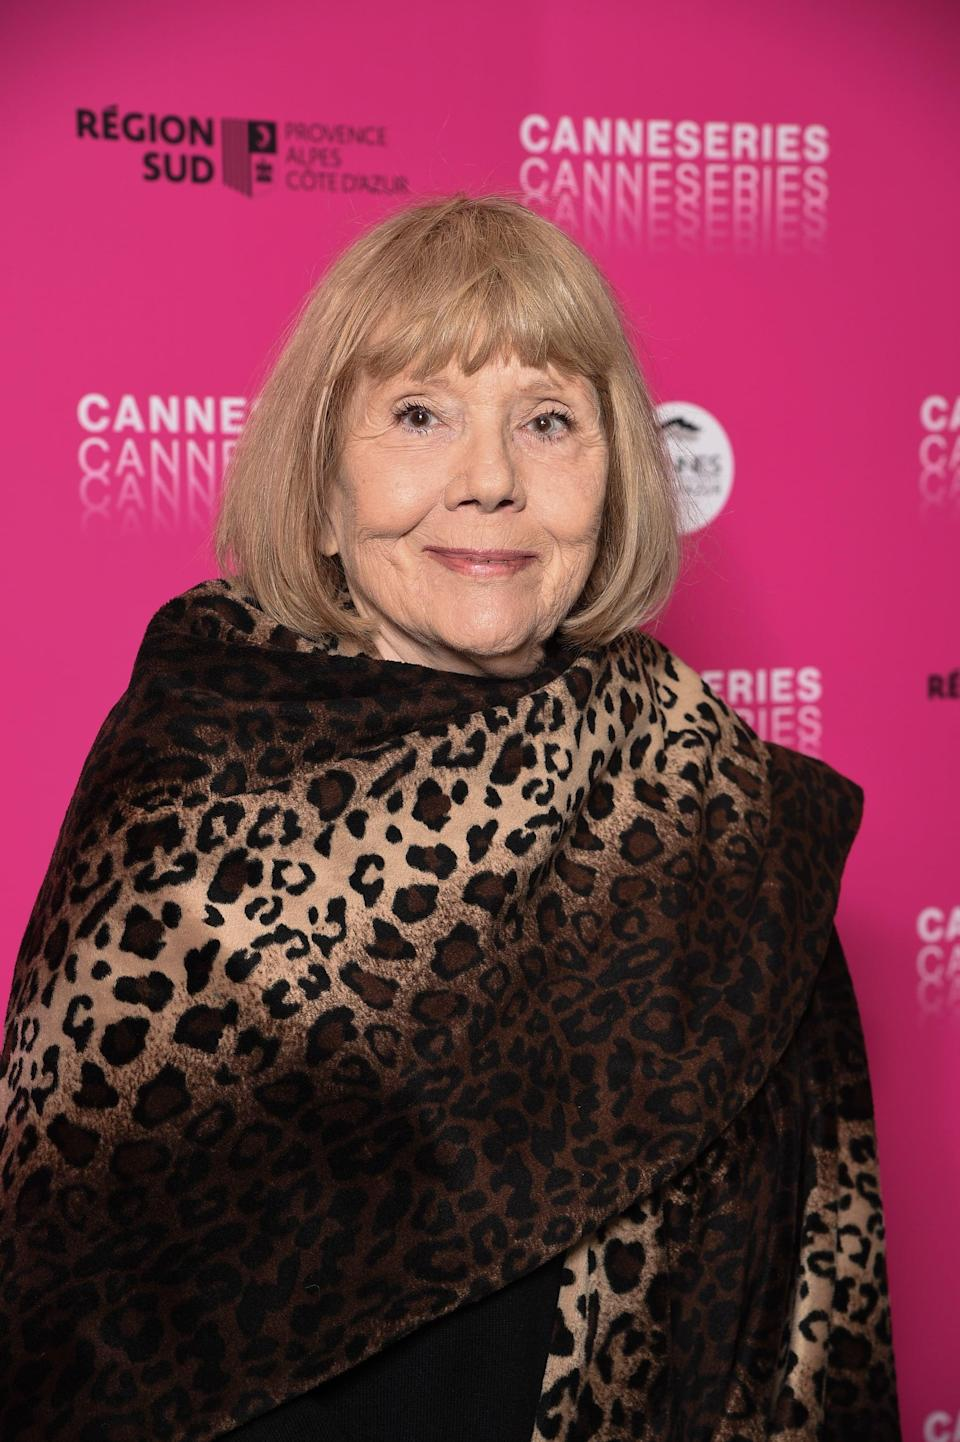 """<p>The actress, who was well known for her roles on <strong>Game of Thrones</strong>, in <strong>The Avengers</strong>, and in the James Bond franchise, <a href=""""http://deadline.com/2020/09/diana-rigg-dies-games-of-thrones-the-avengers-bond-actress-was-82-1234574375/"""" class=""""link rapid-noclick-resp"""" rel=""""nofollow noopener"""" target=""""_blank"""" data-ylk=""""slk:died at age 82"""">died at age 82</a> in September.<br></p>"""